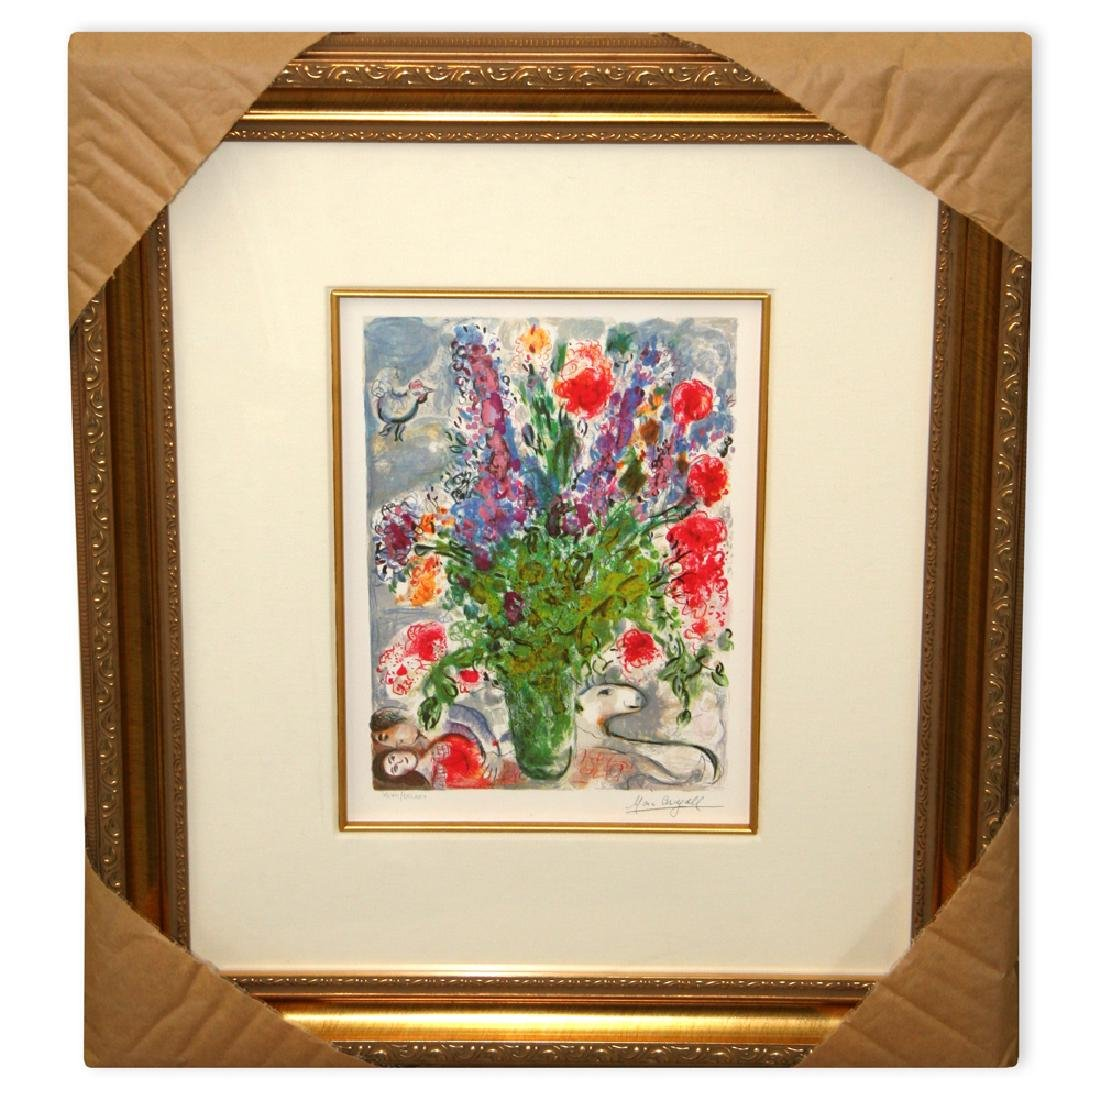 Chagall (After) 'Les Lupins Bleu' Museum Framed